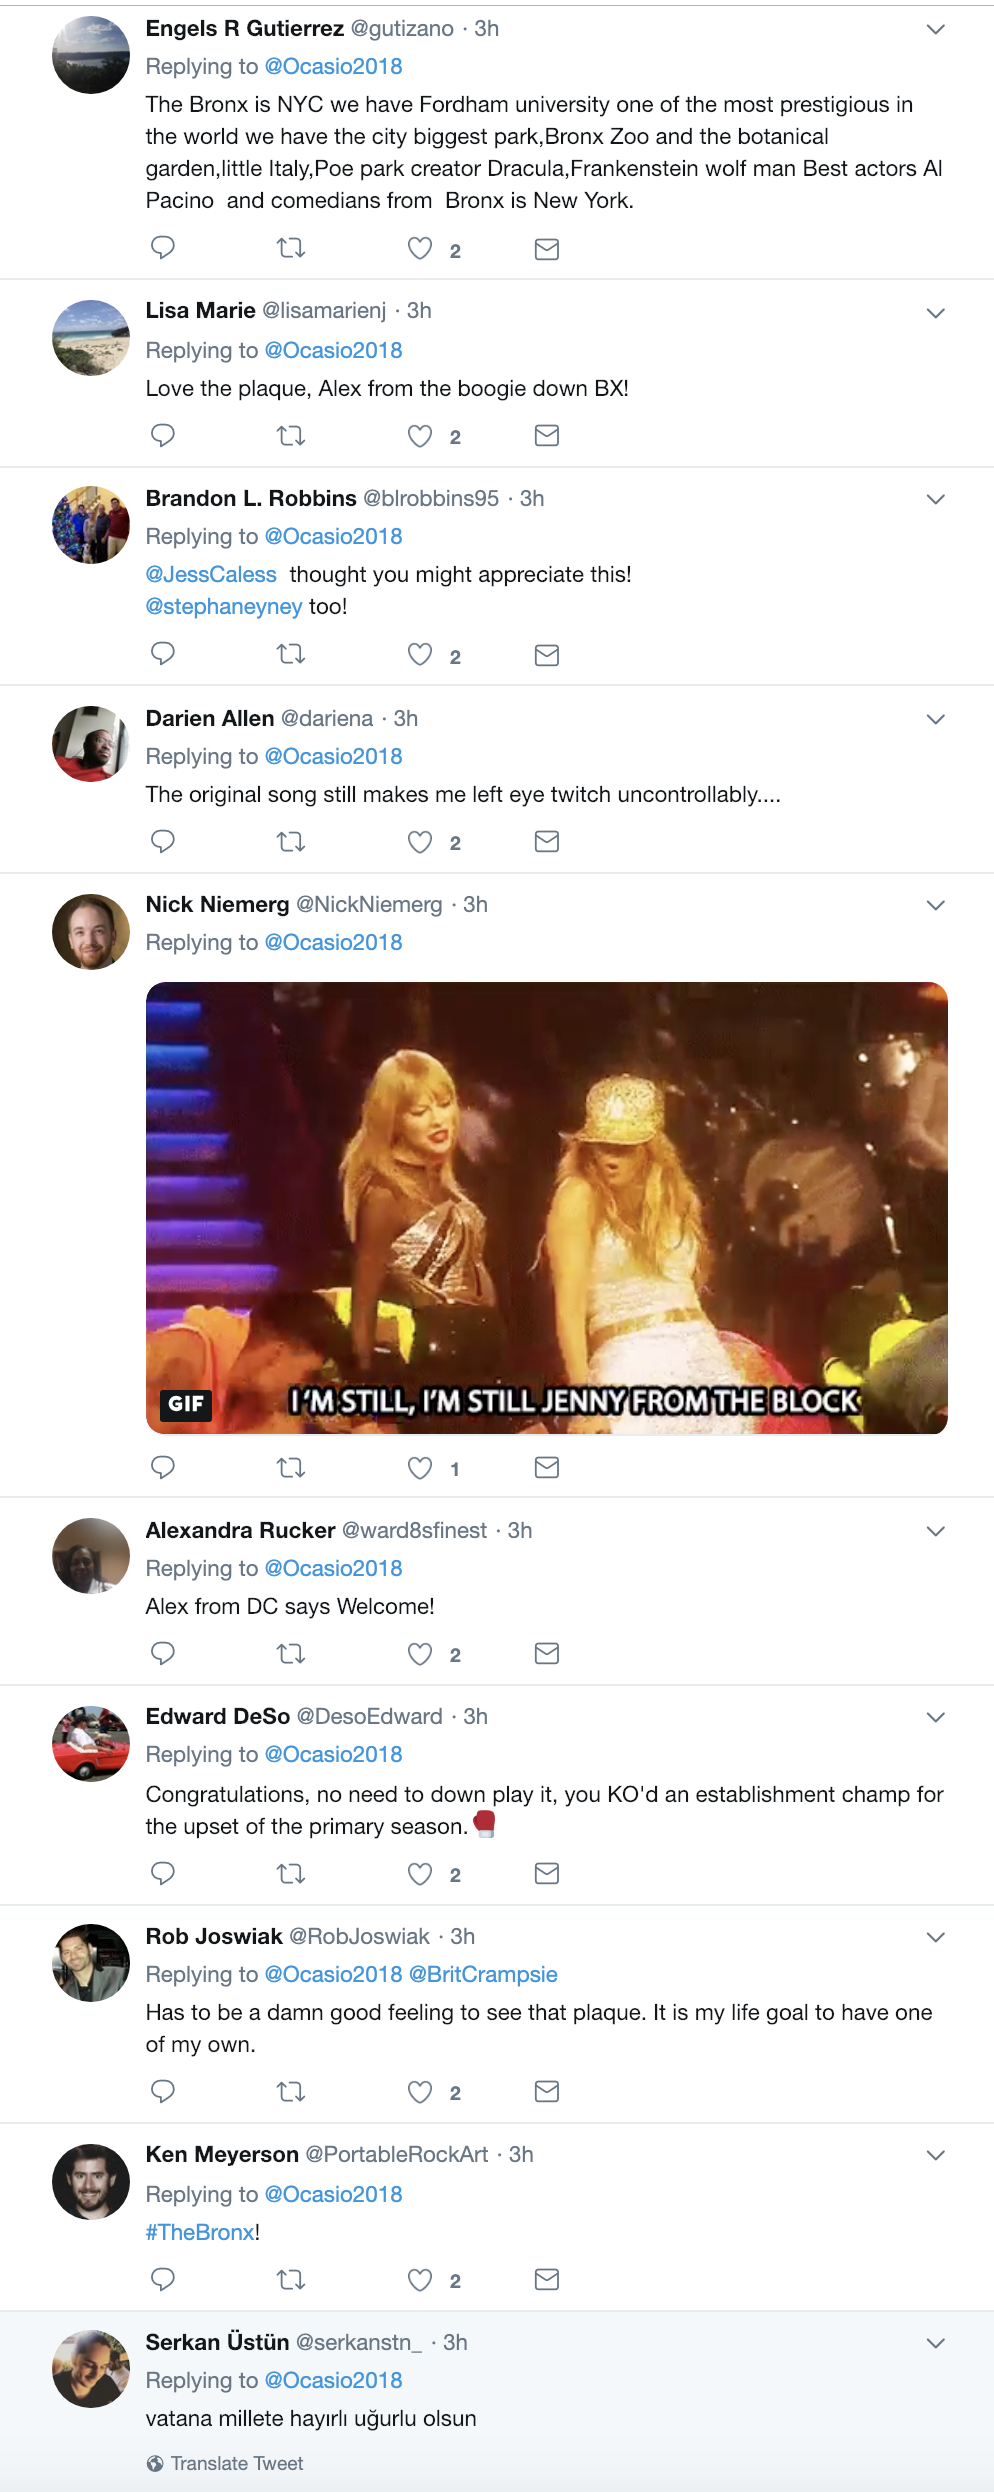 Screen-Shot-2018-12-27-at-12.21.30-PM Ocasio-Cortez Tweets Pic Of Gift From Jennifer Lopez - GOP Heads Explodes Celebrities Election 2018 Music Politics Top Stories